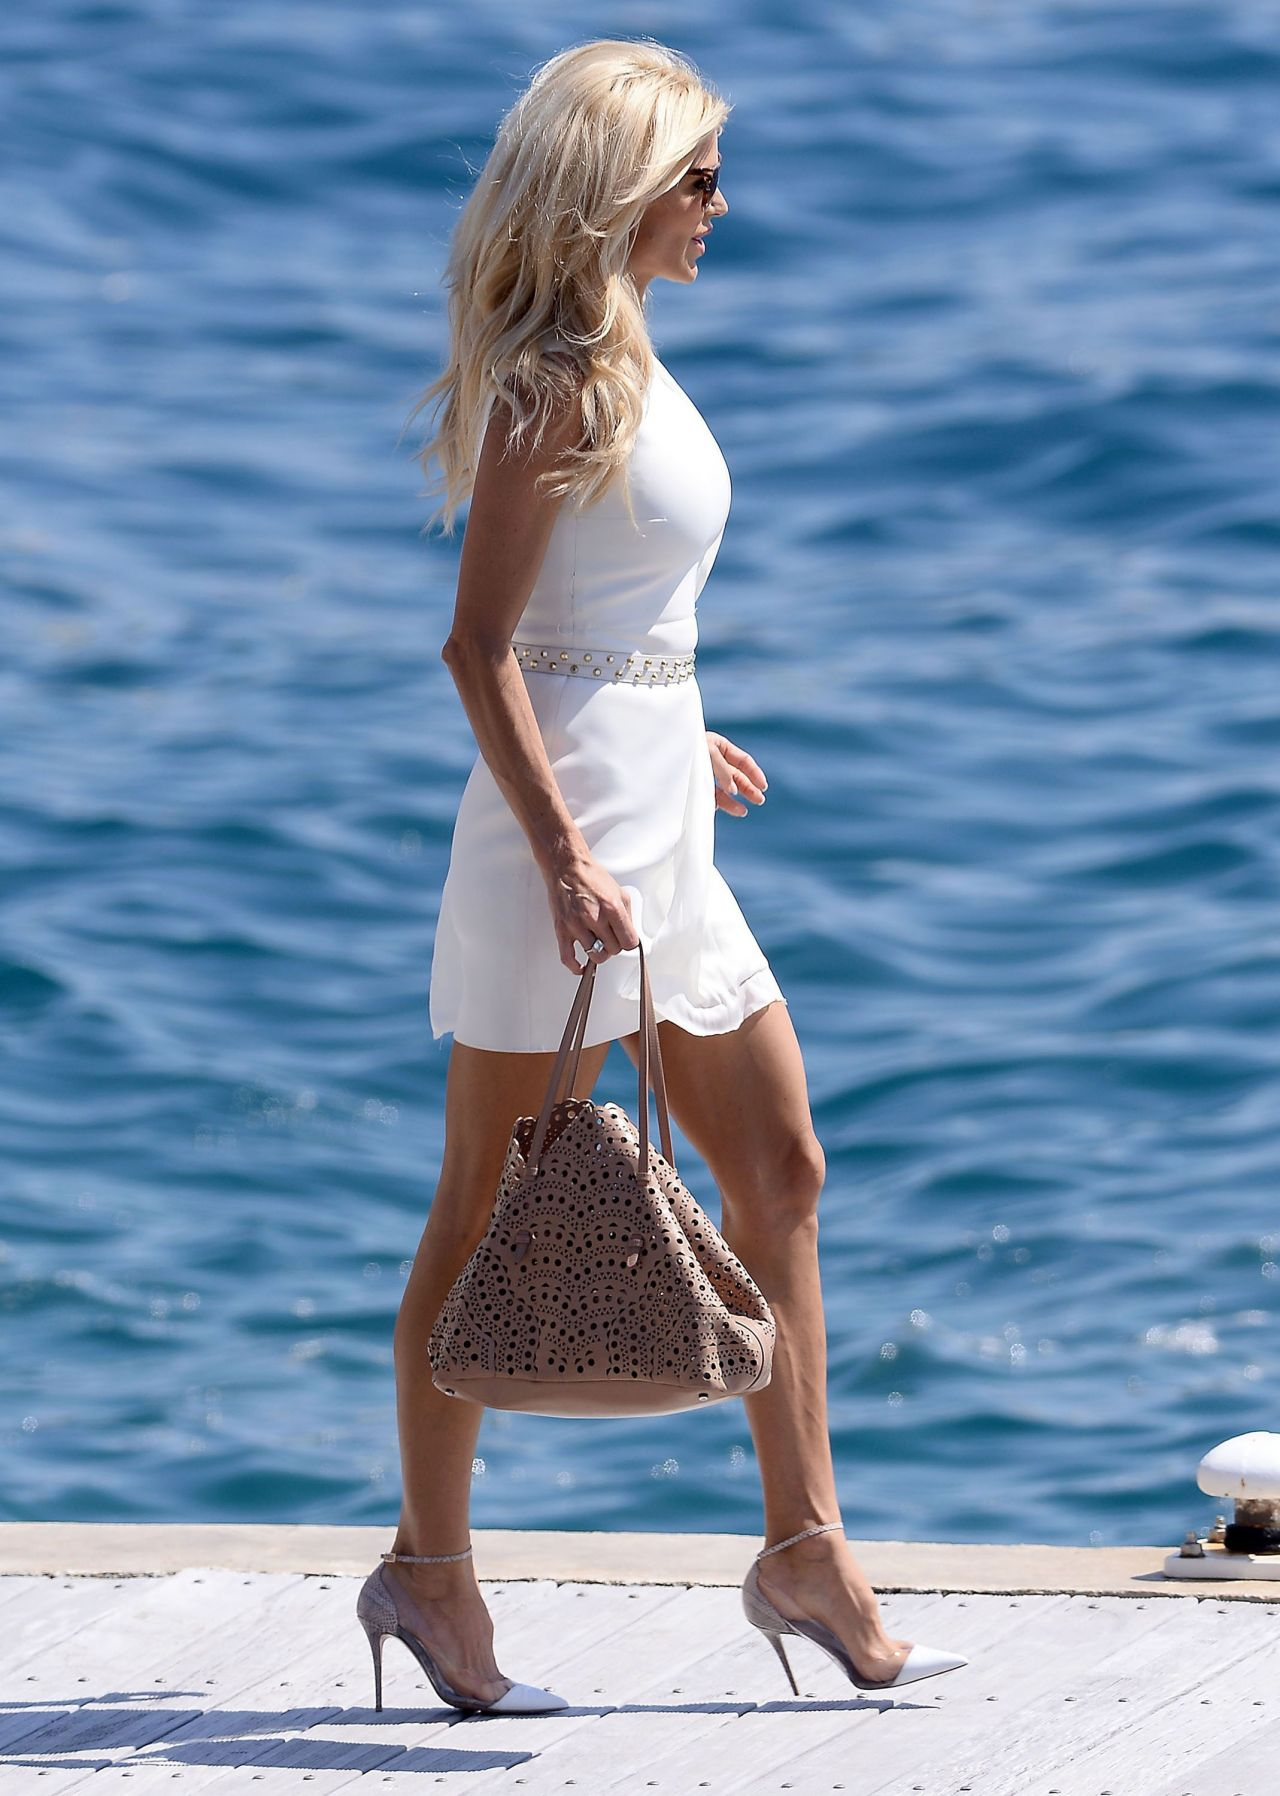 Victoria Silvstedt At The Hotel Du Cap Eden Roc In Cannes